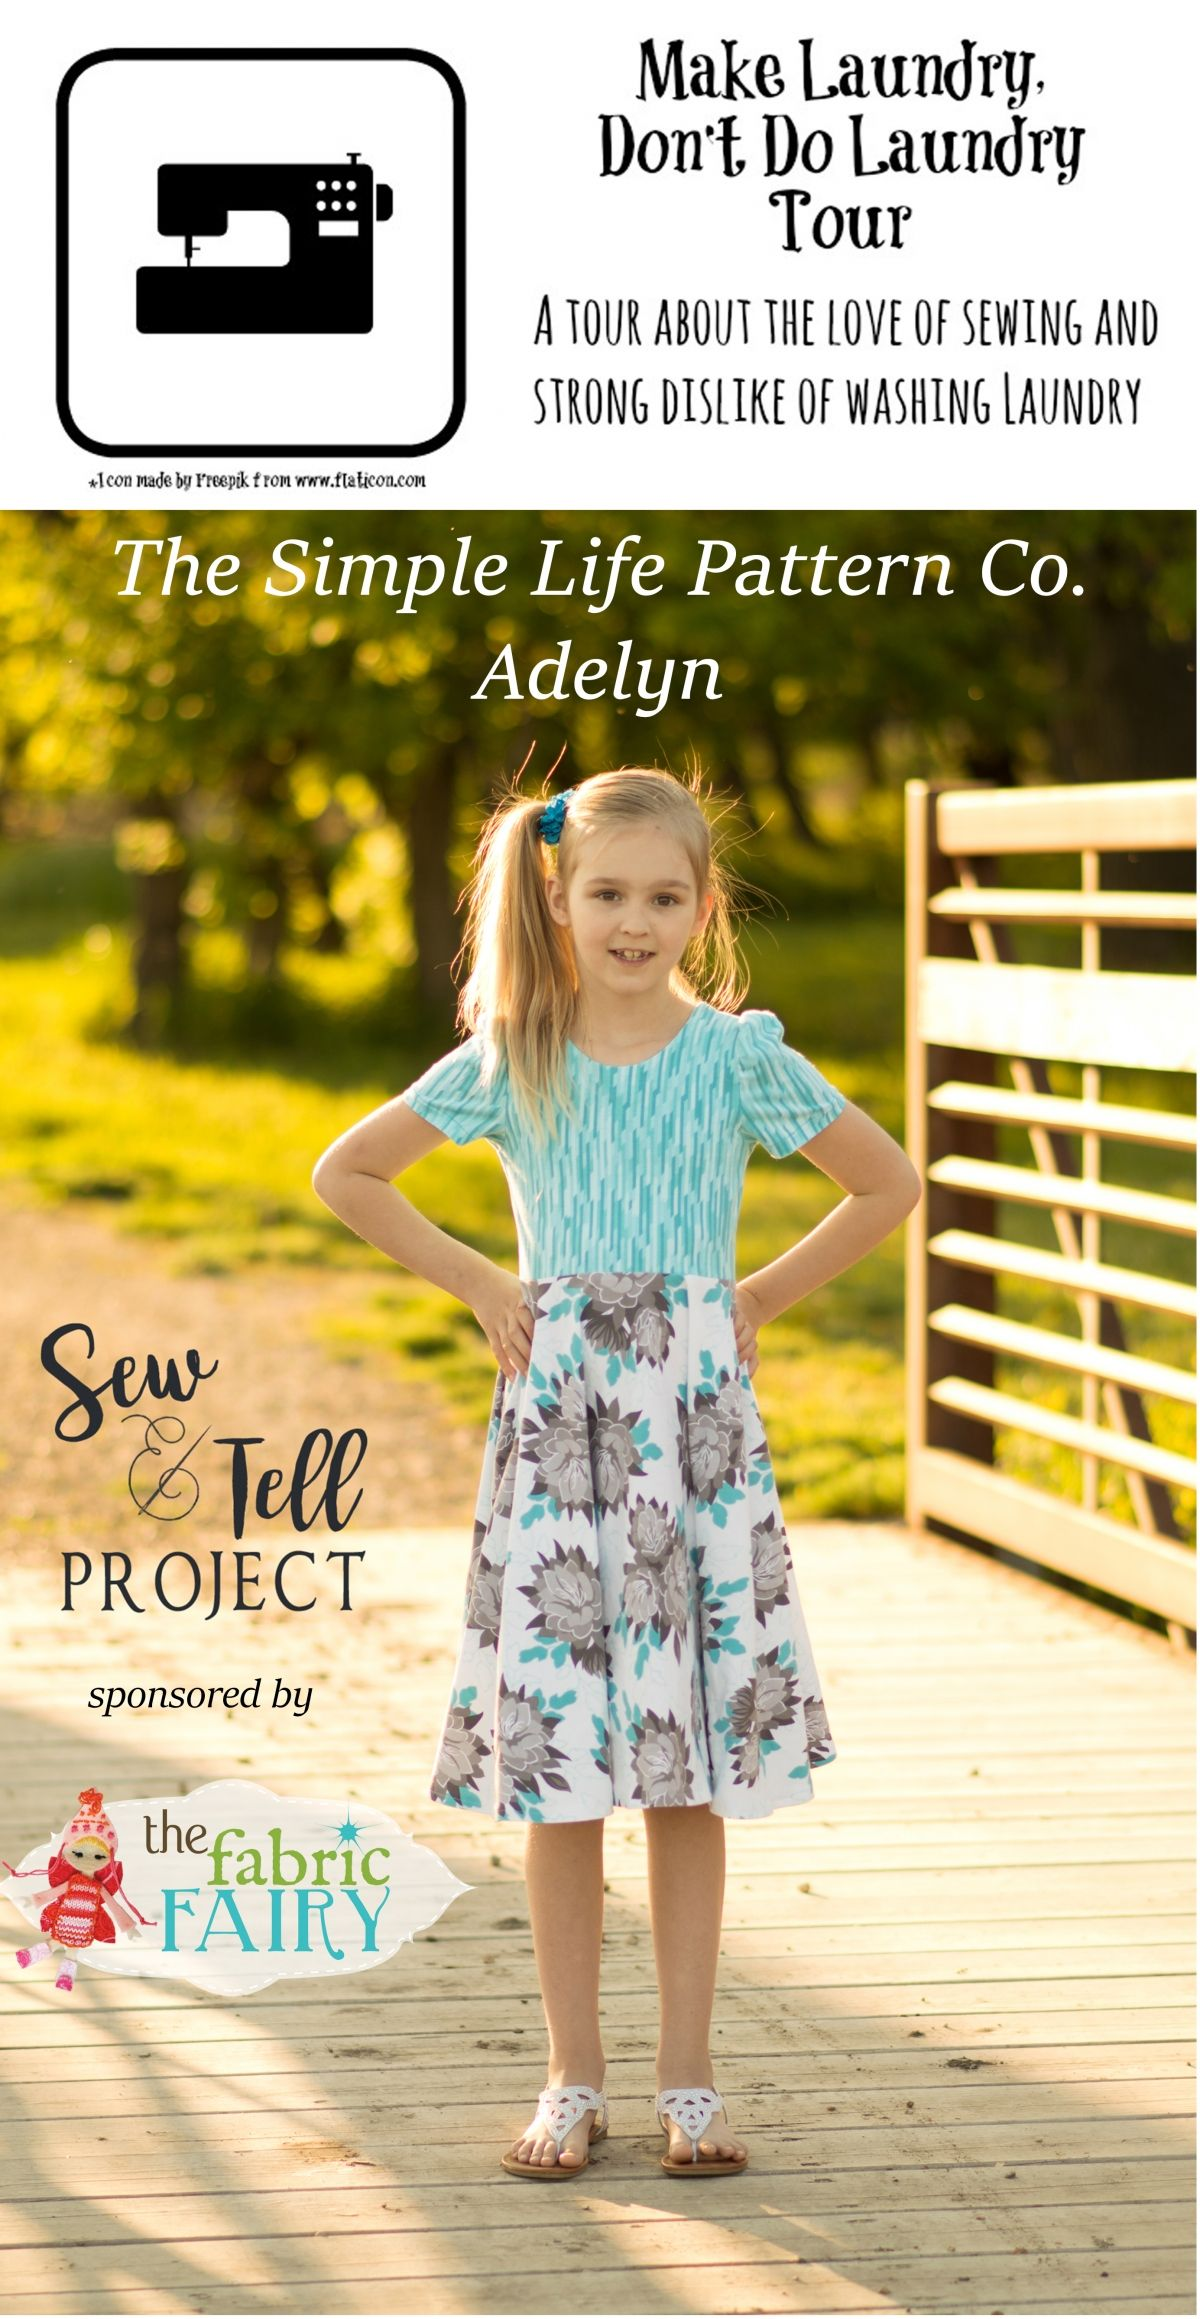 Make Laundry, Don't Do Laundry: SLPco Adelyn – The Sew and Tell